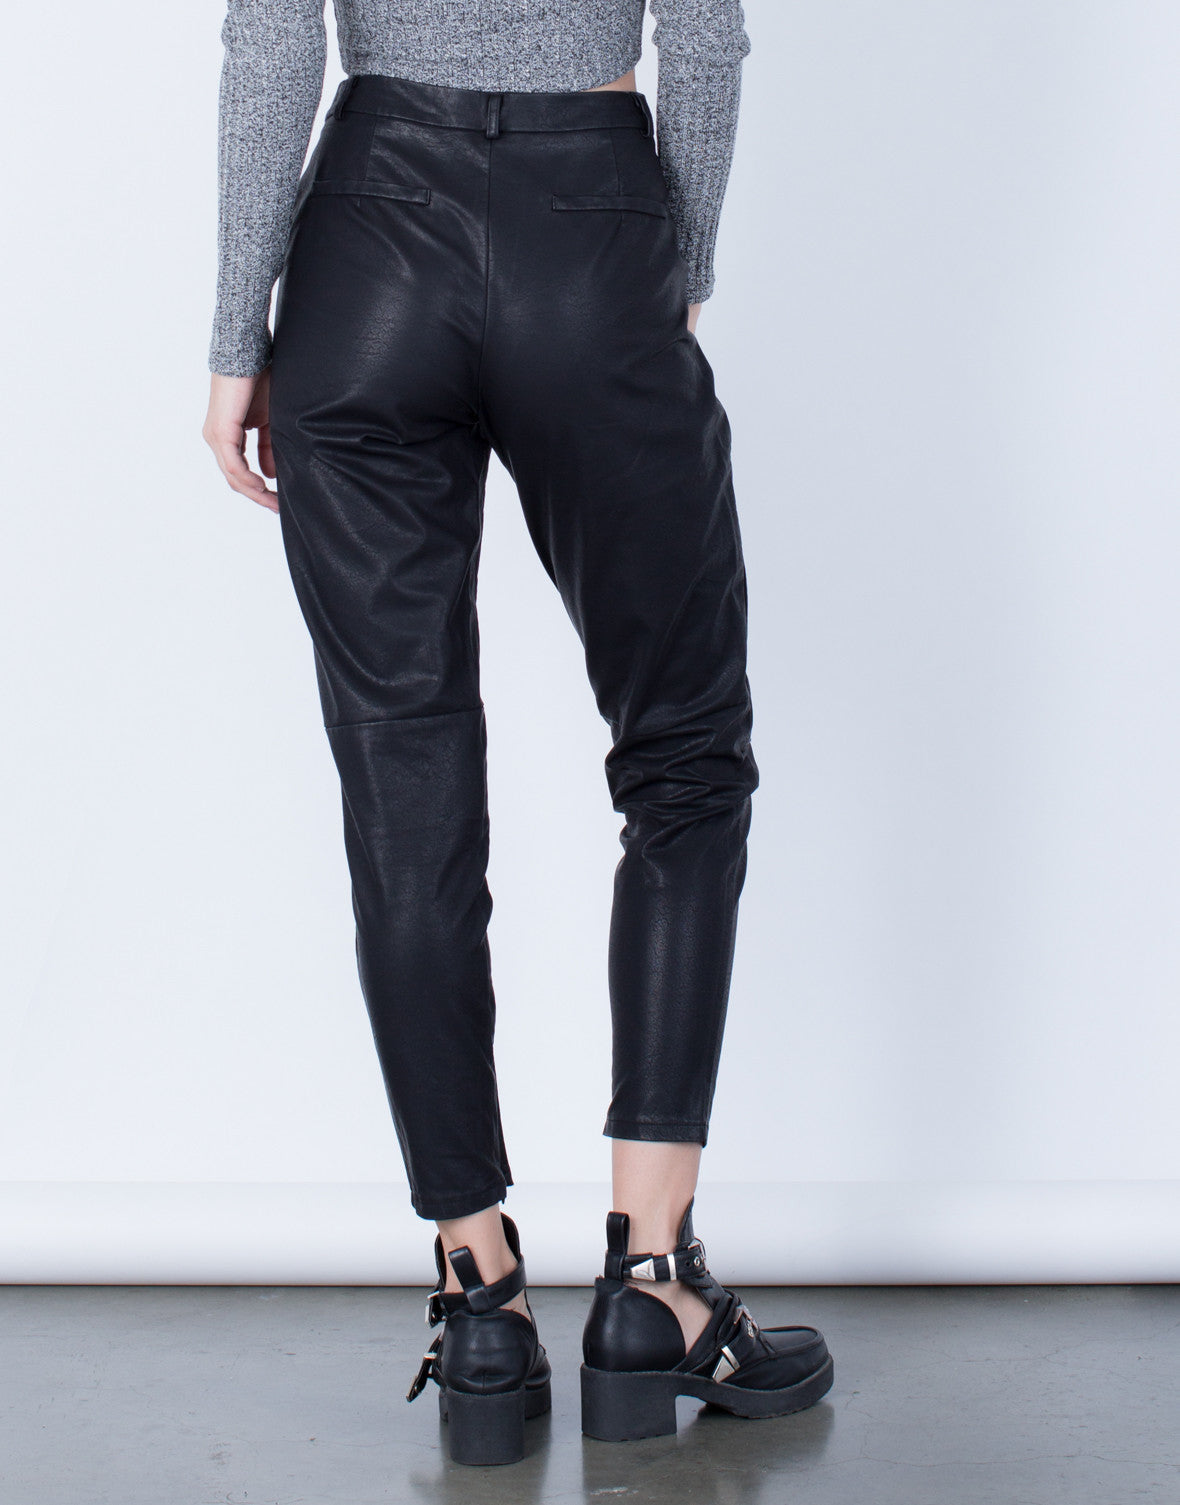 Back View of Leather Trouser Pants